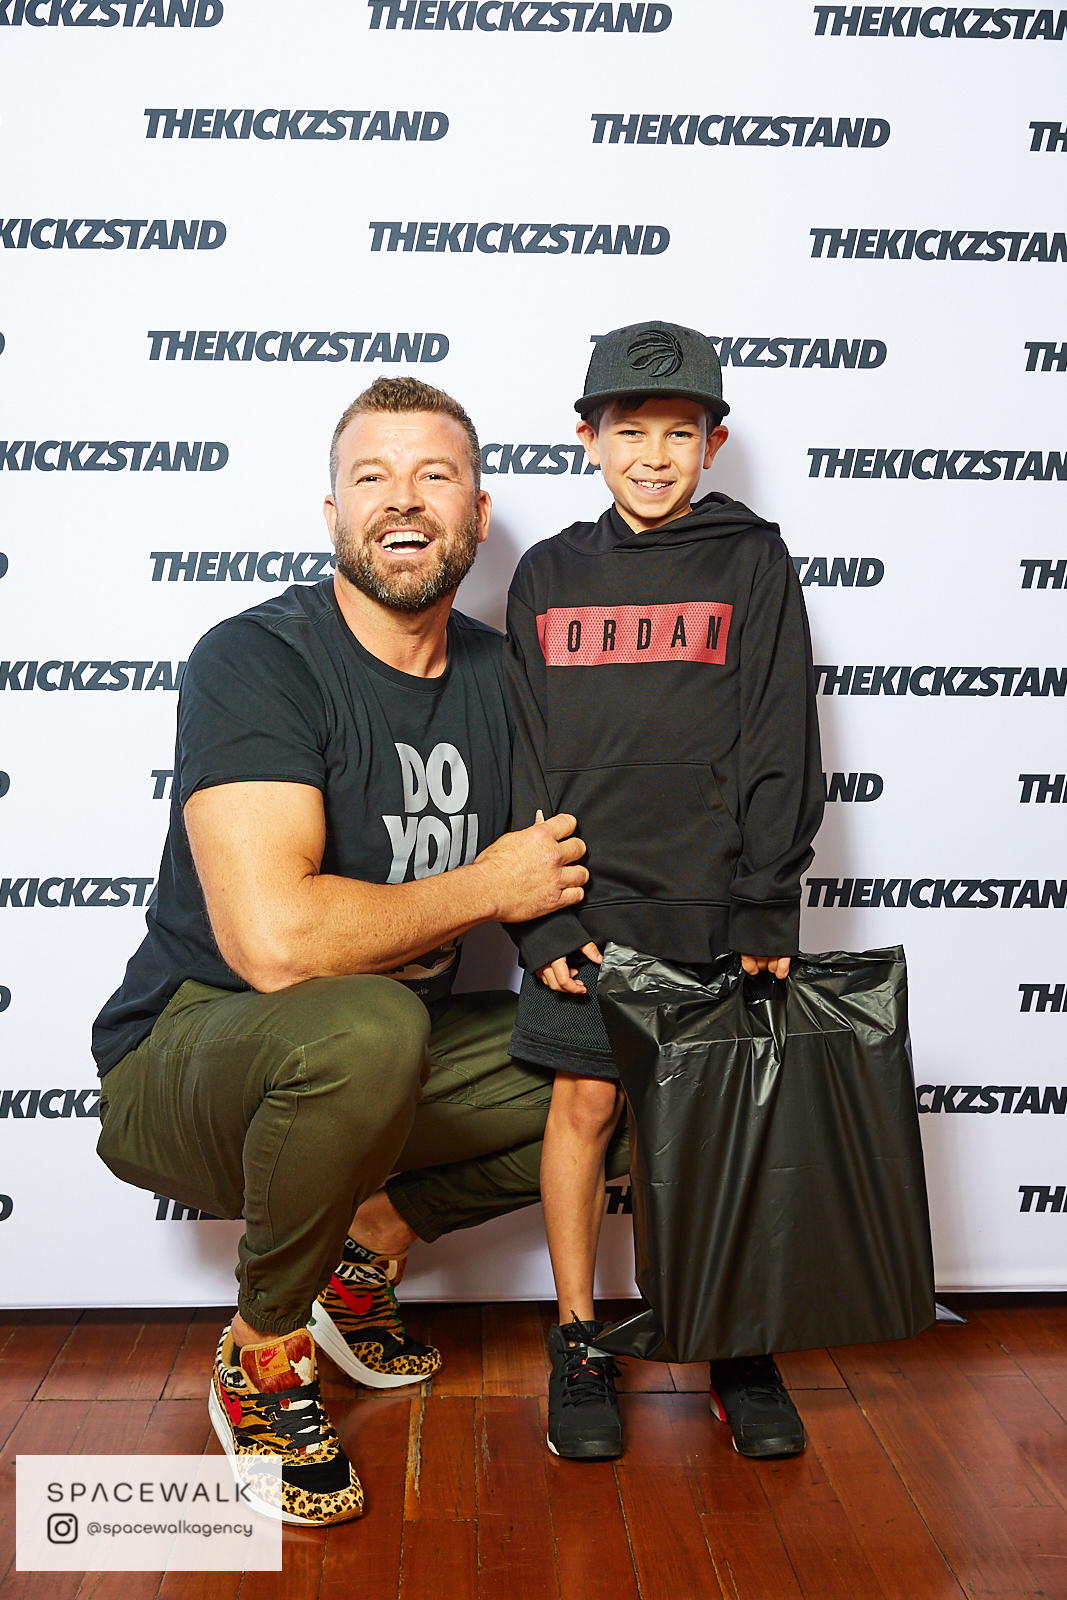 KICKZSTAND_BOOTH_039